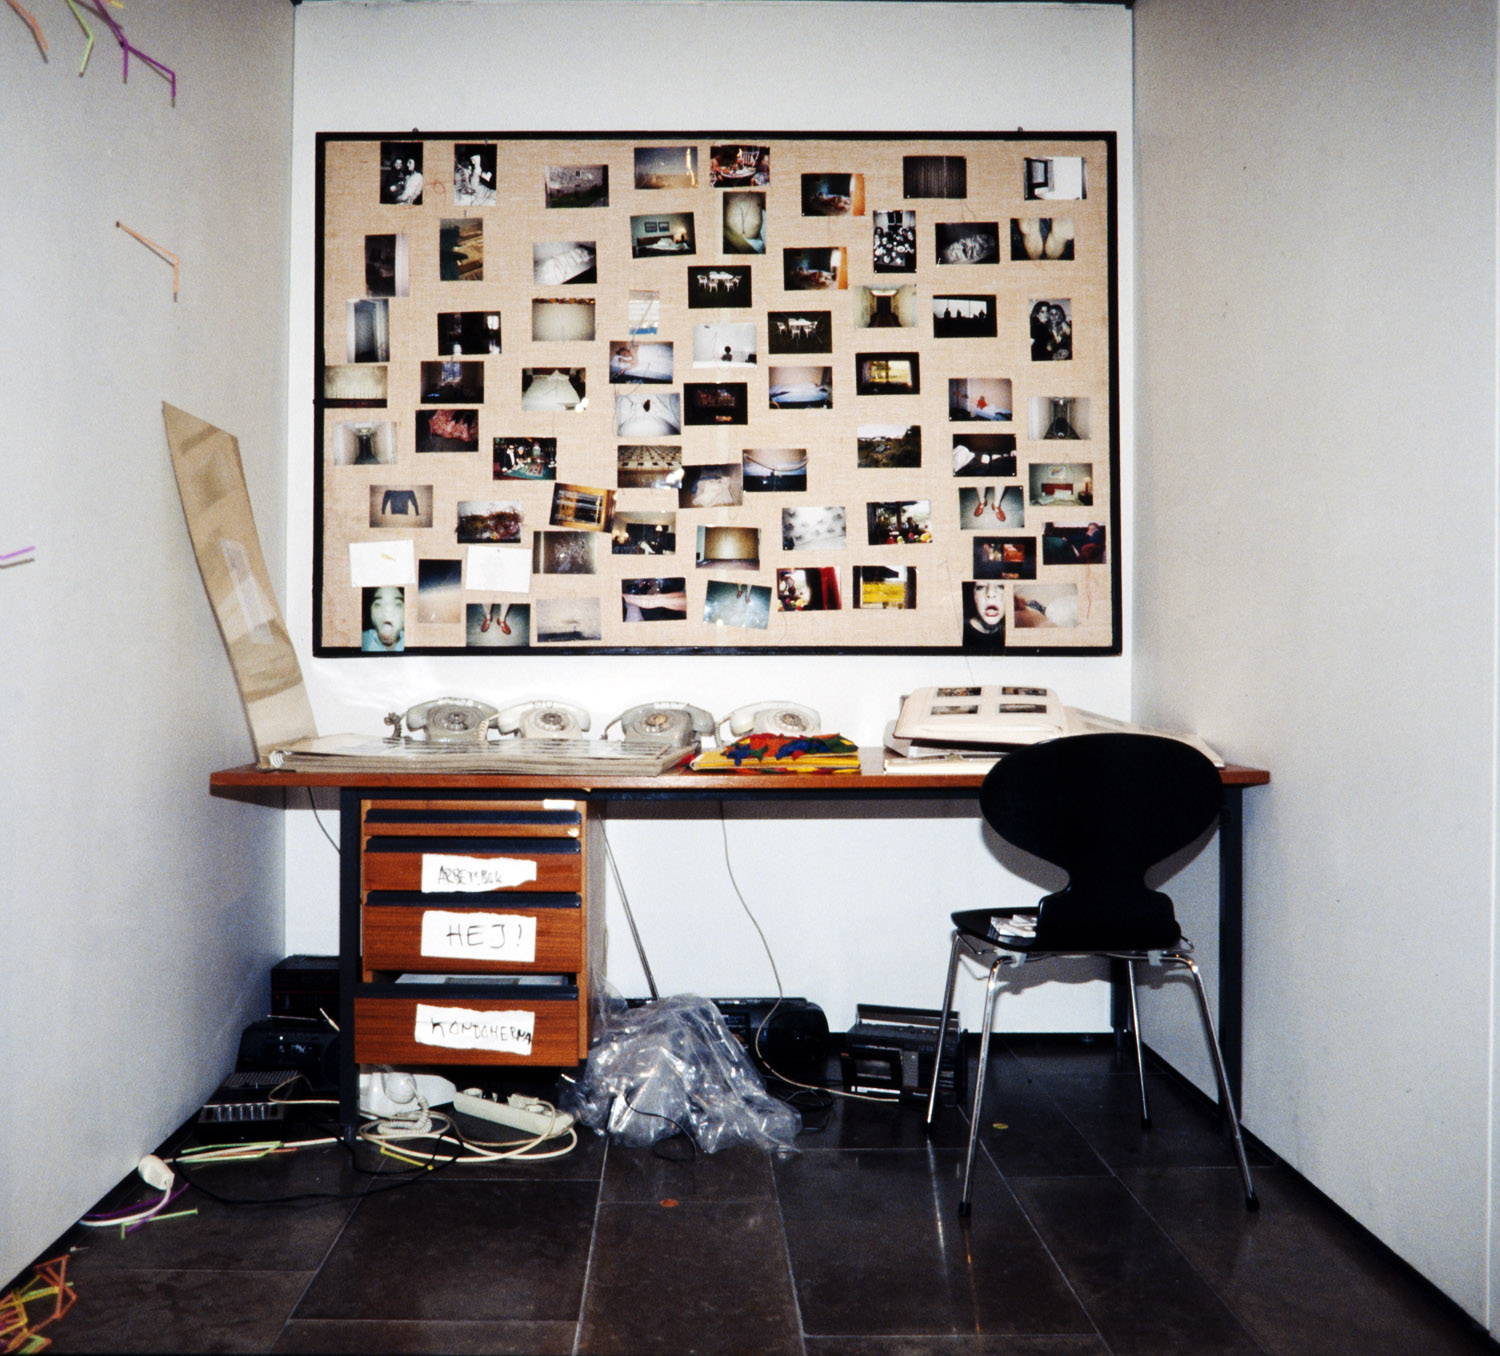 """This pinboard version of sew samples was shown at Hasselblad Center in Gothenburg as part of the installation """"office"""" each picture 10x15 cm"""